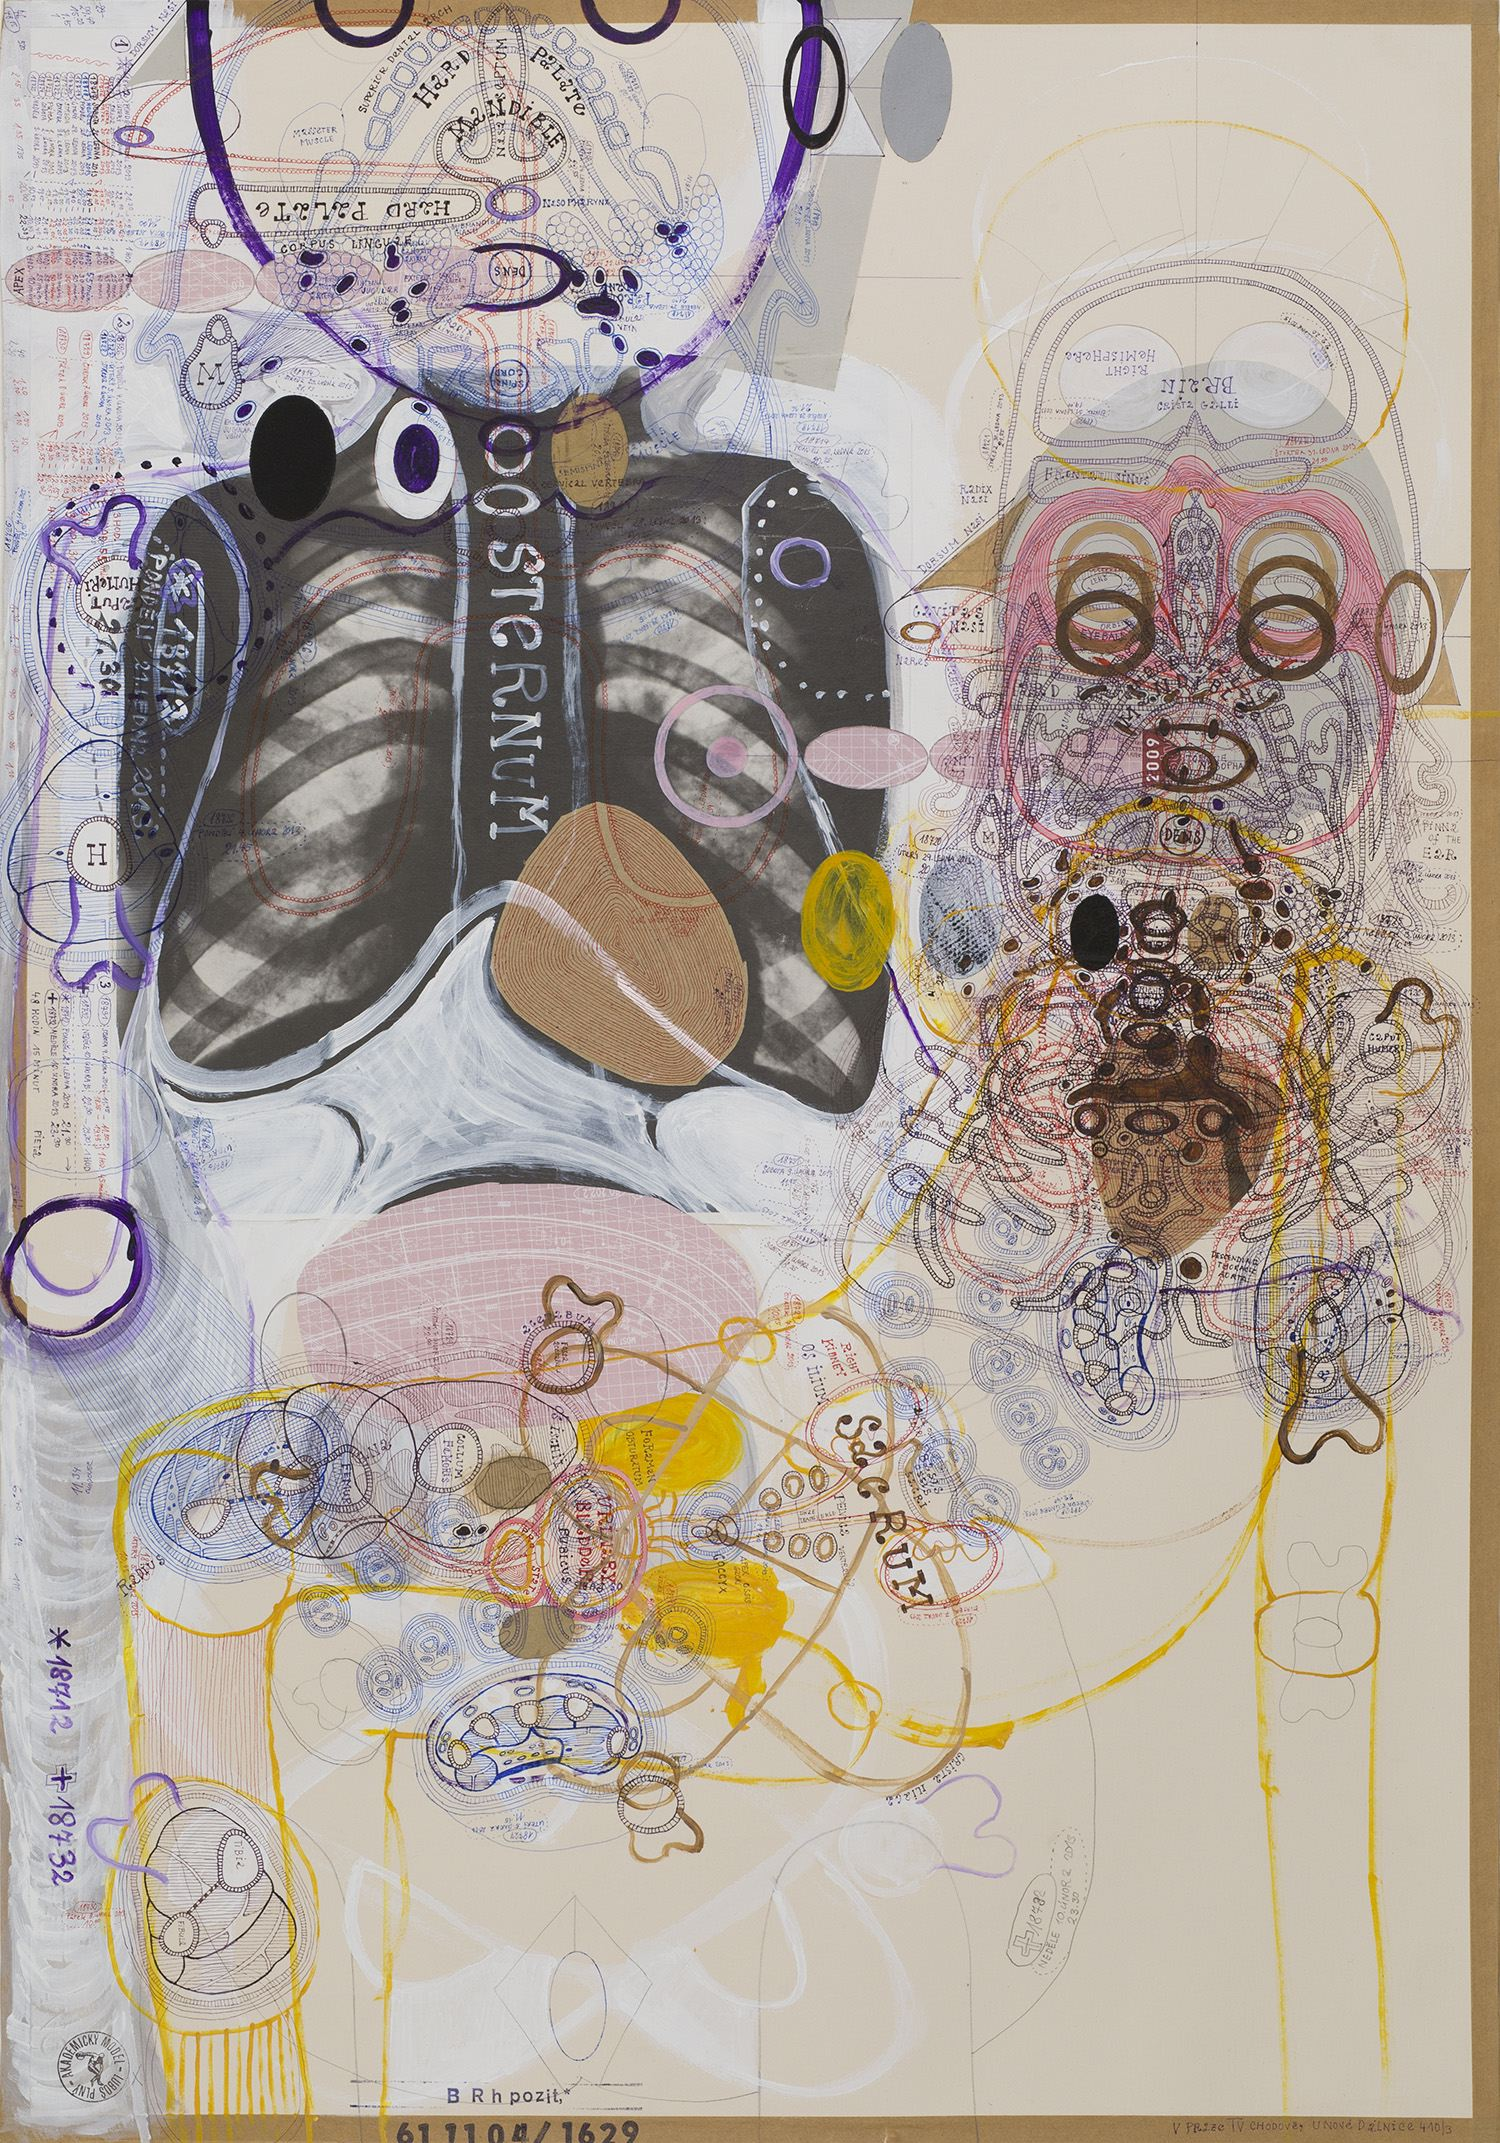 Luboš Plný    Sternum  , 2013 Ink, acrylic, mixed media on paper 33.25 x 23.5 inches 84.5 x 59.7 cm LuP 54